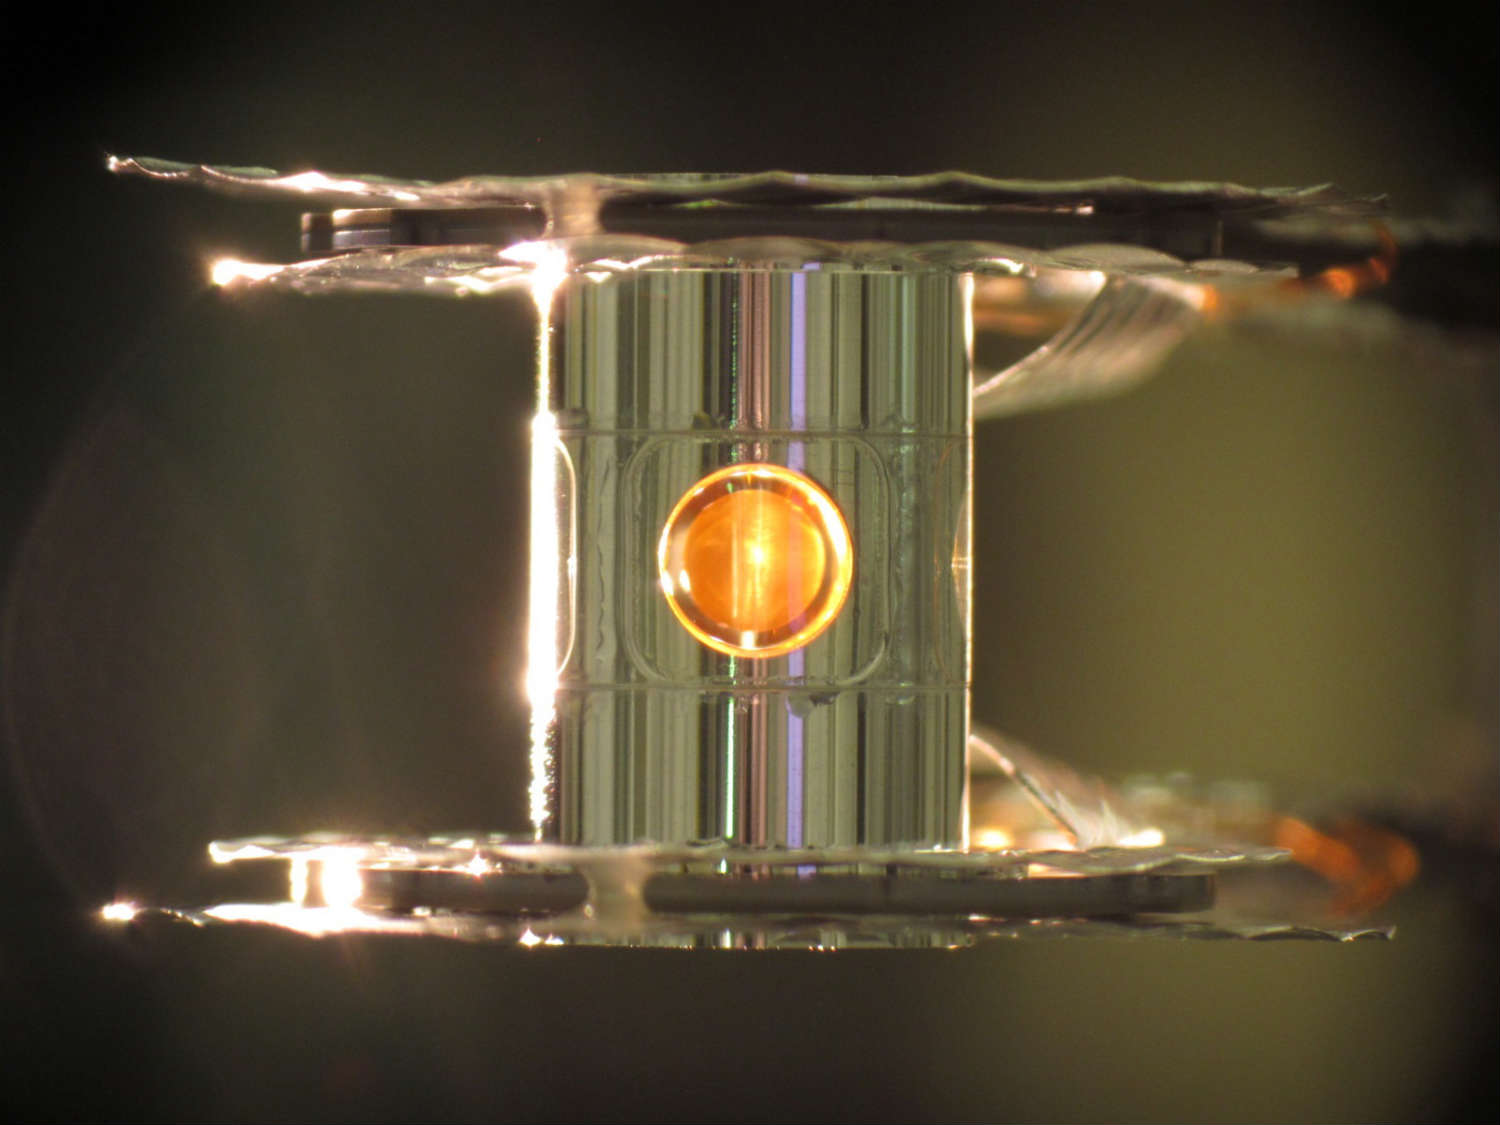 Nuclear fusion takes place within this tiny capsule of hydrogen